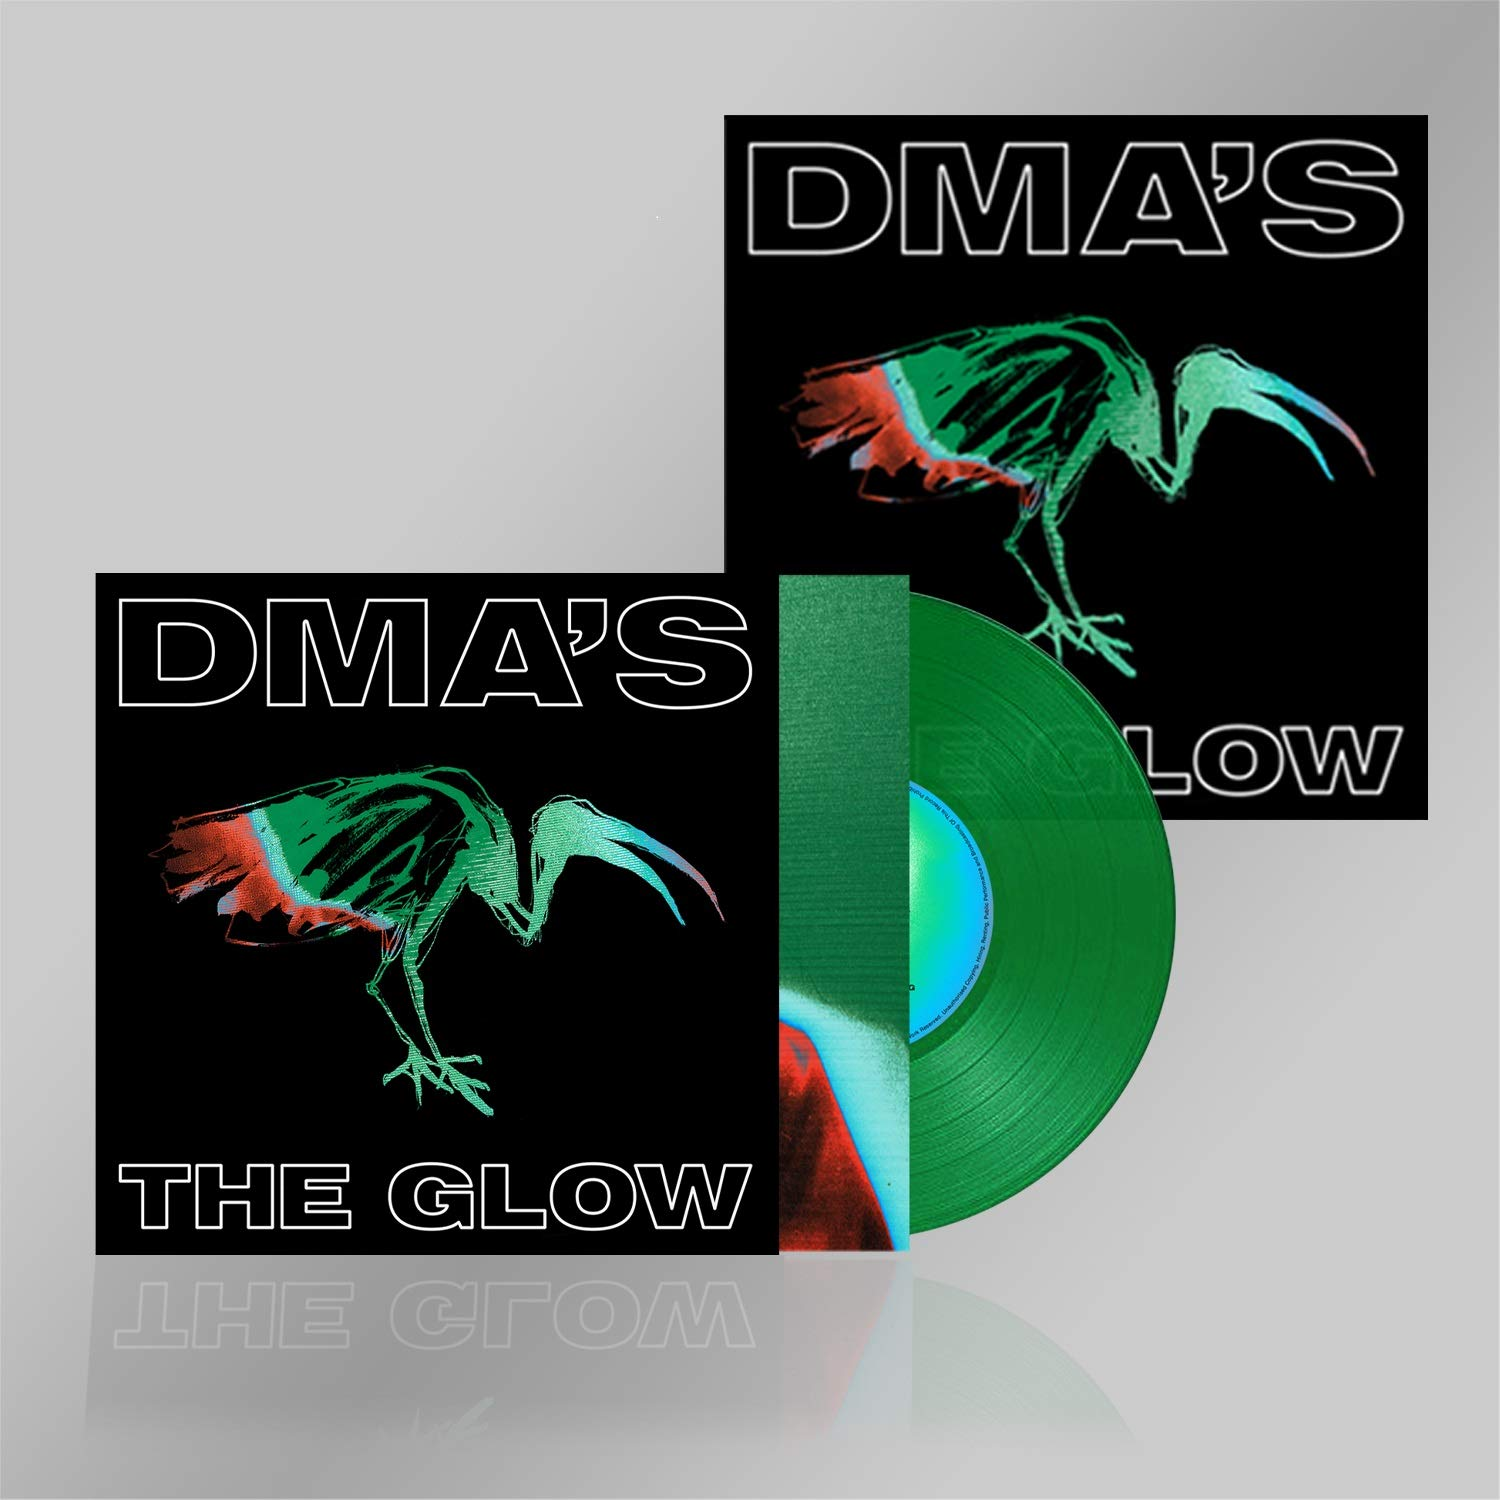 DMA's - The Glow [Import LP]